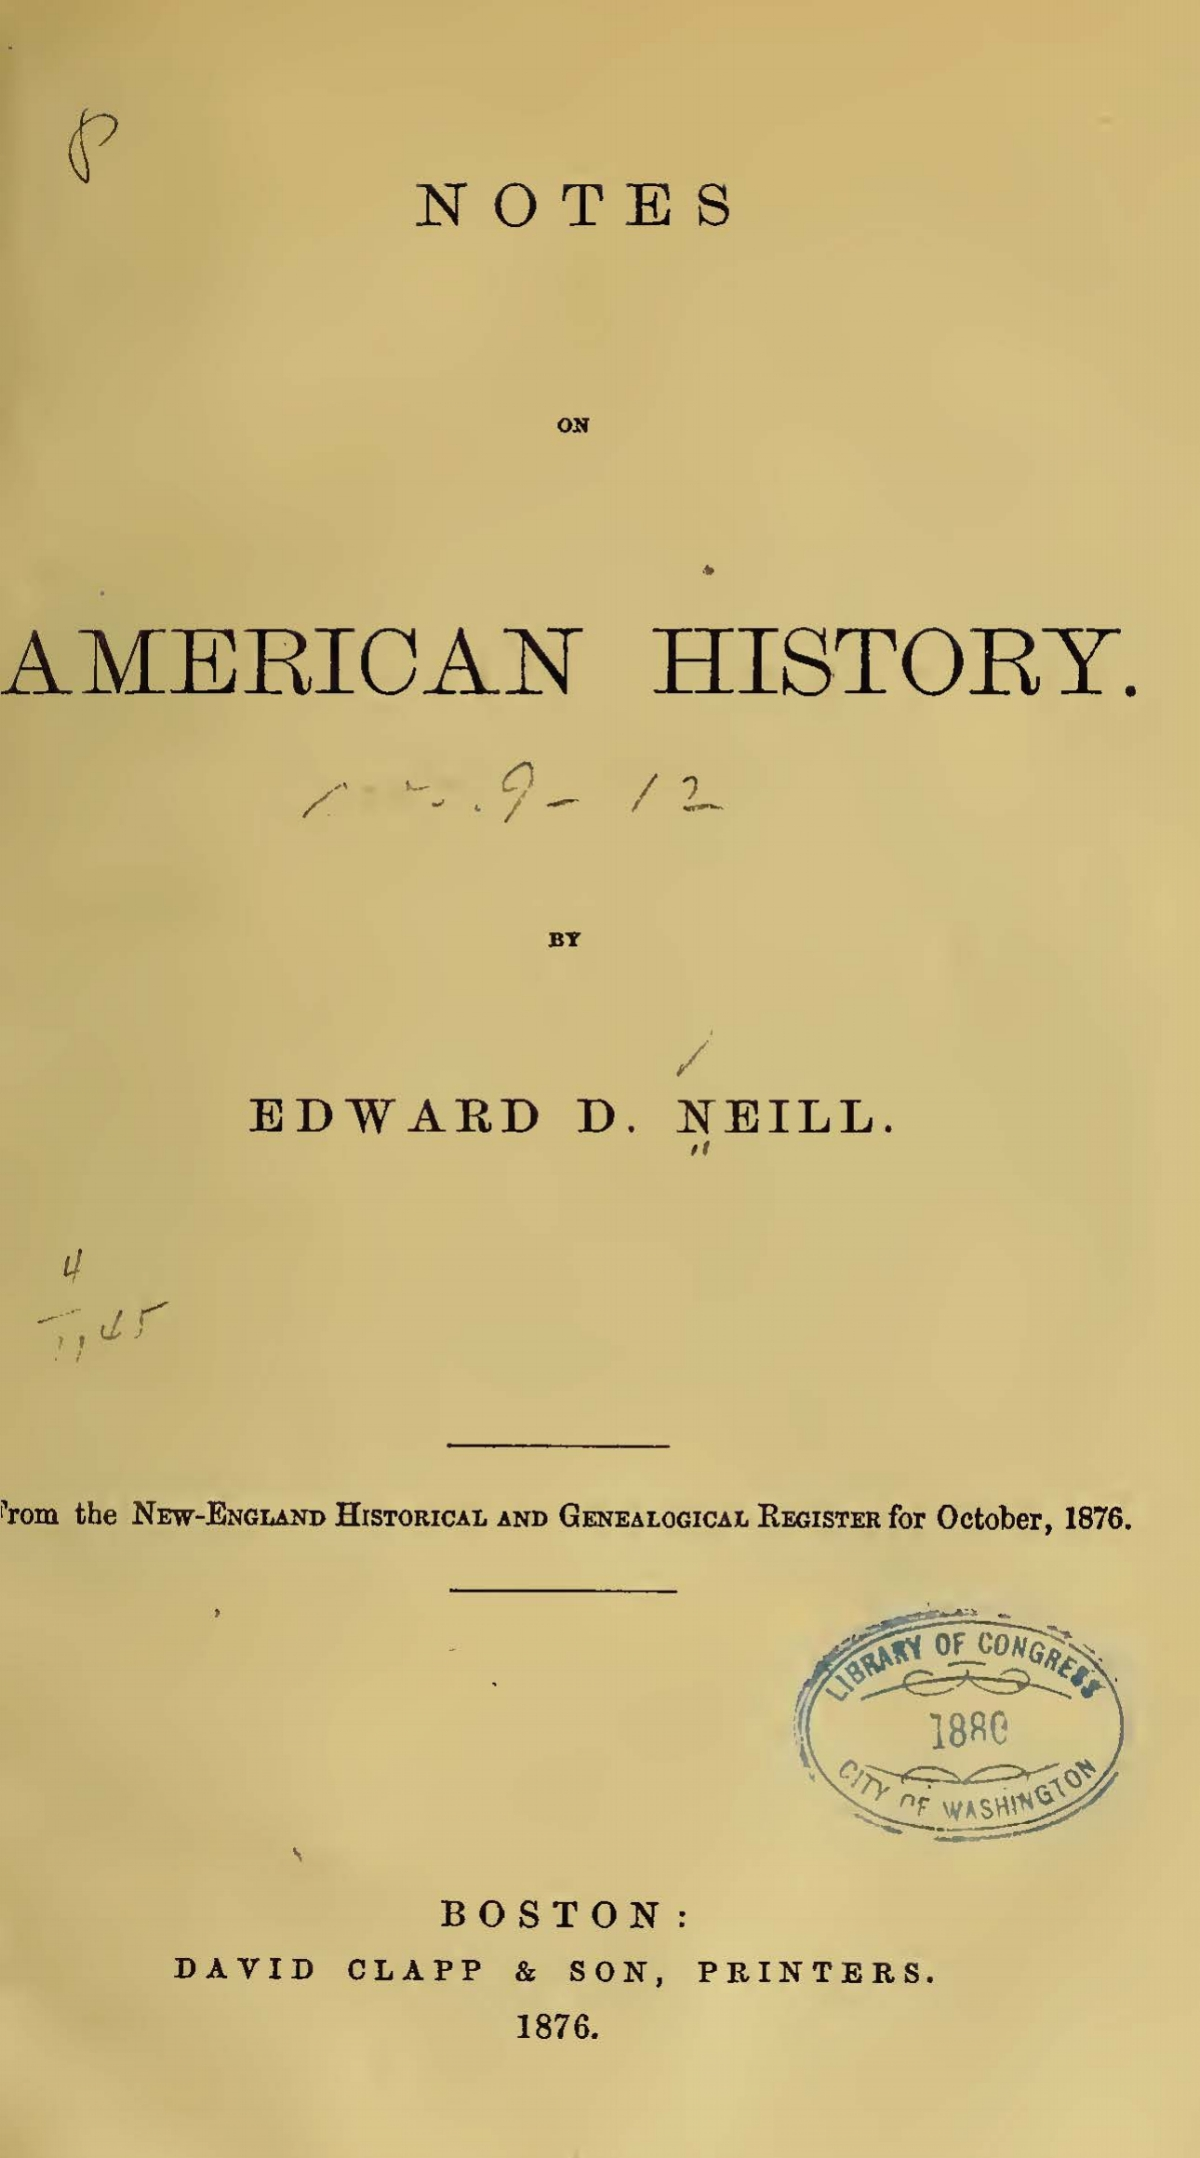 Neill, Edward Duffield, Notes on American History Title Page.jpg